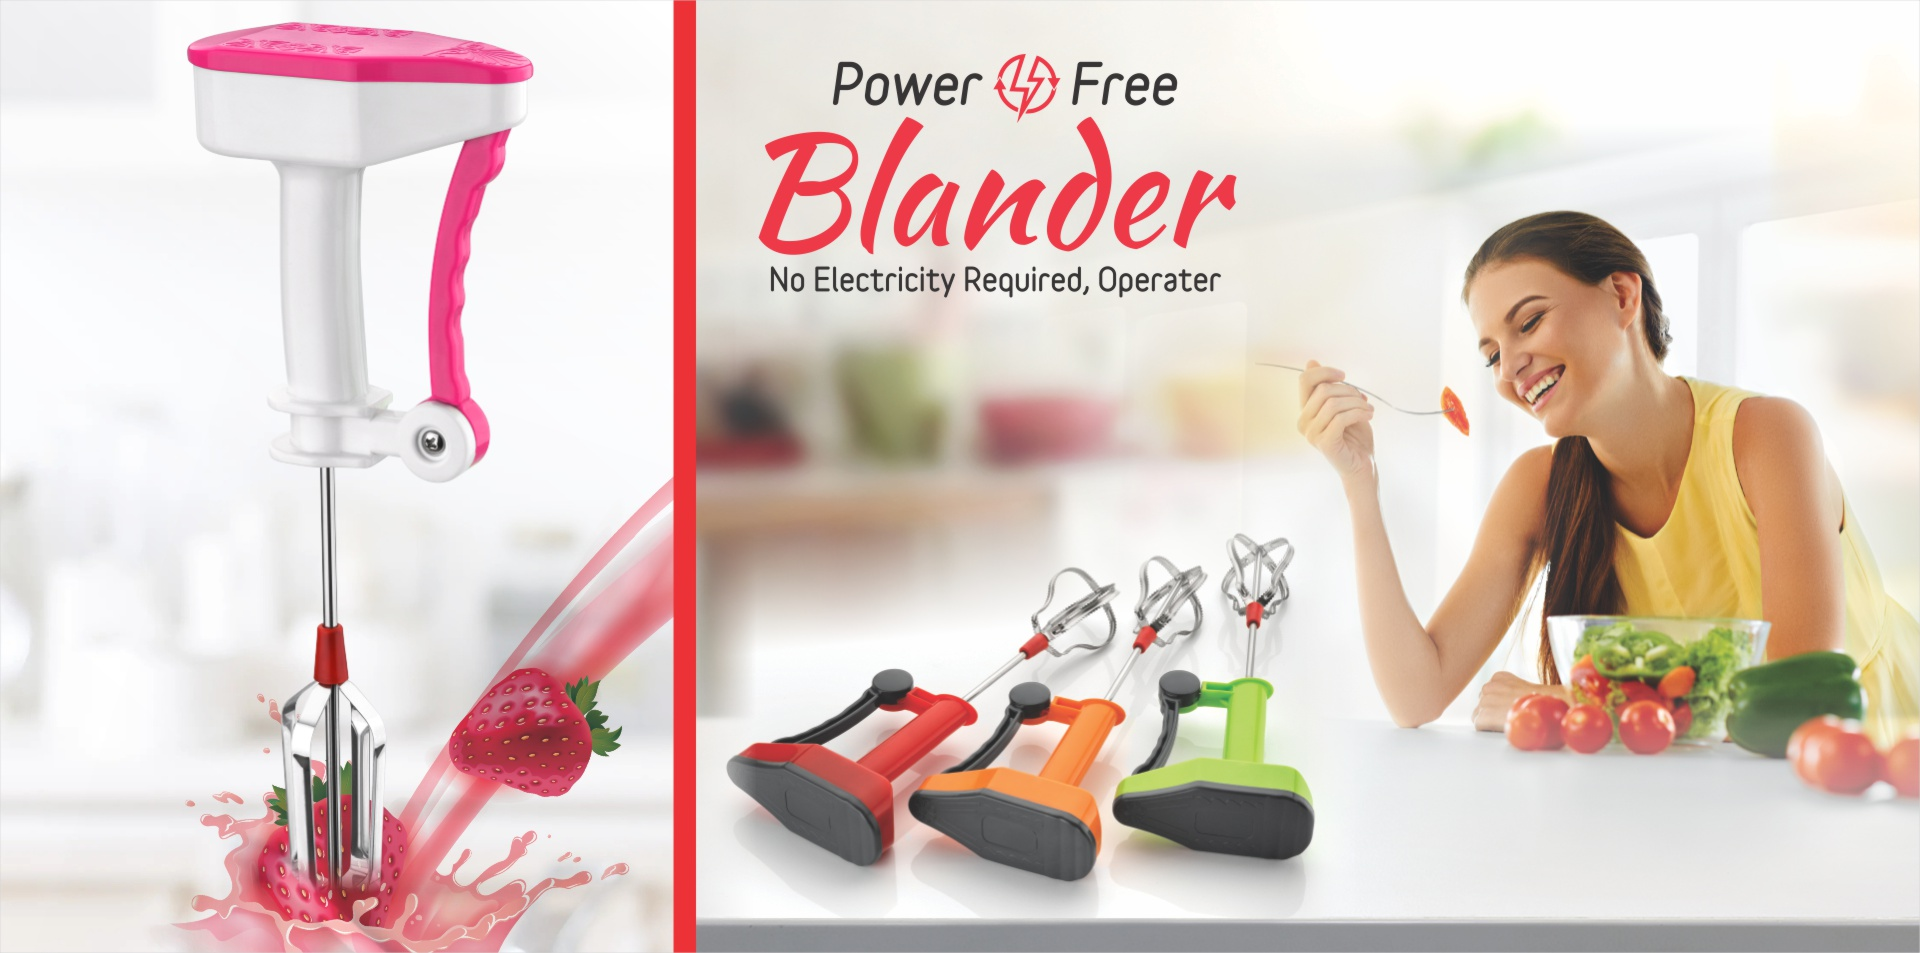 Power Free Blander | Network Kitchenware